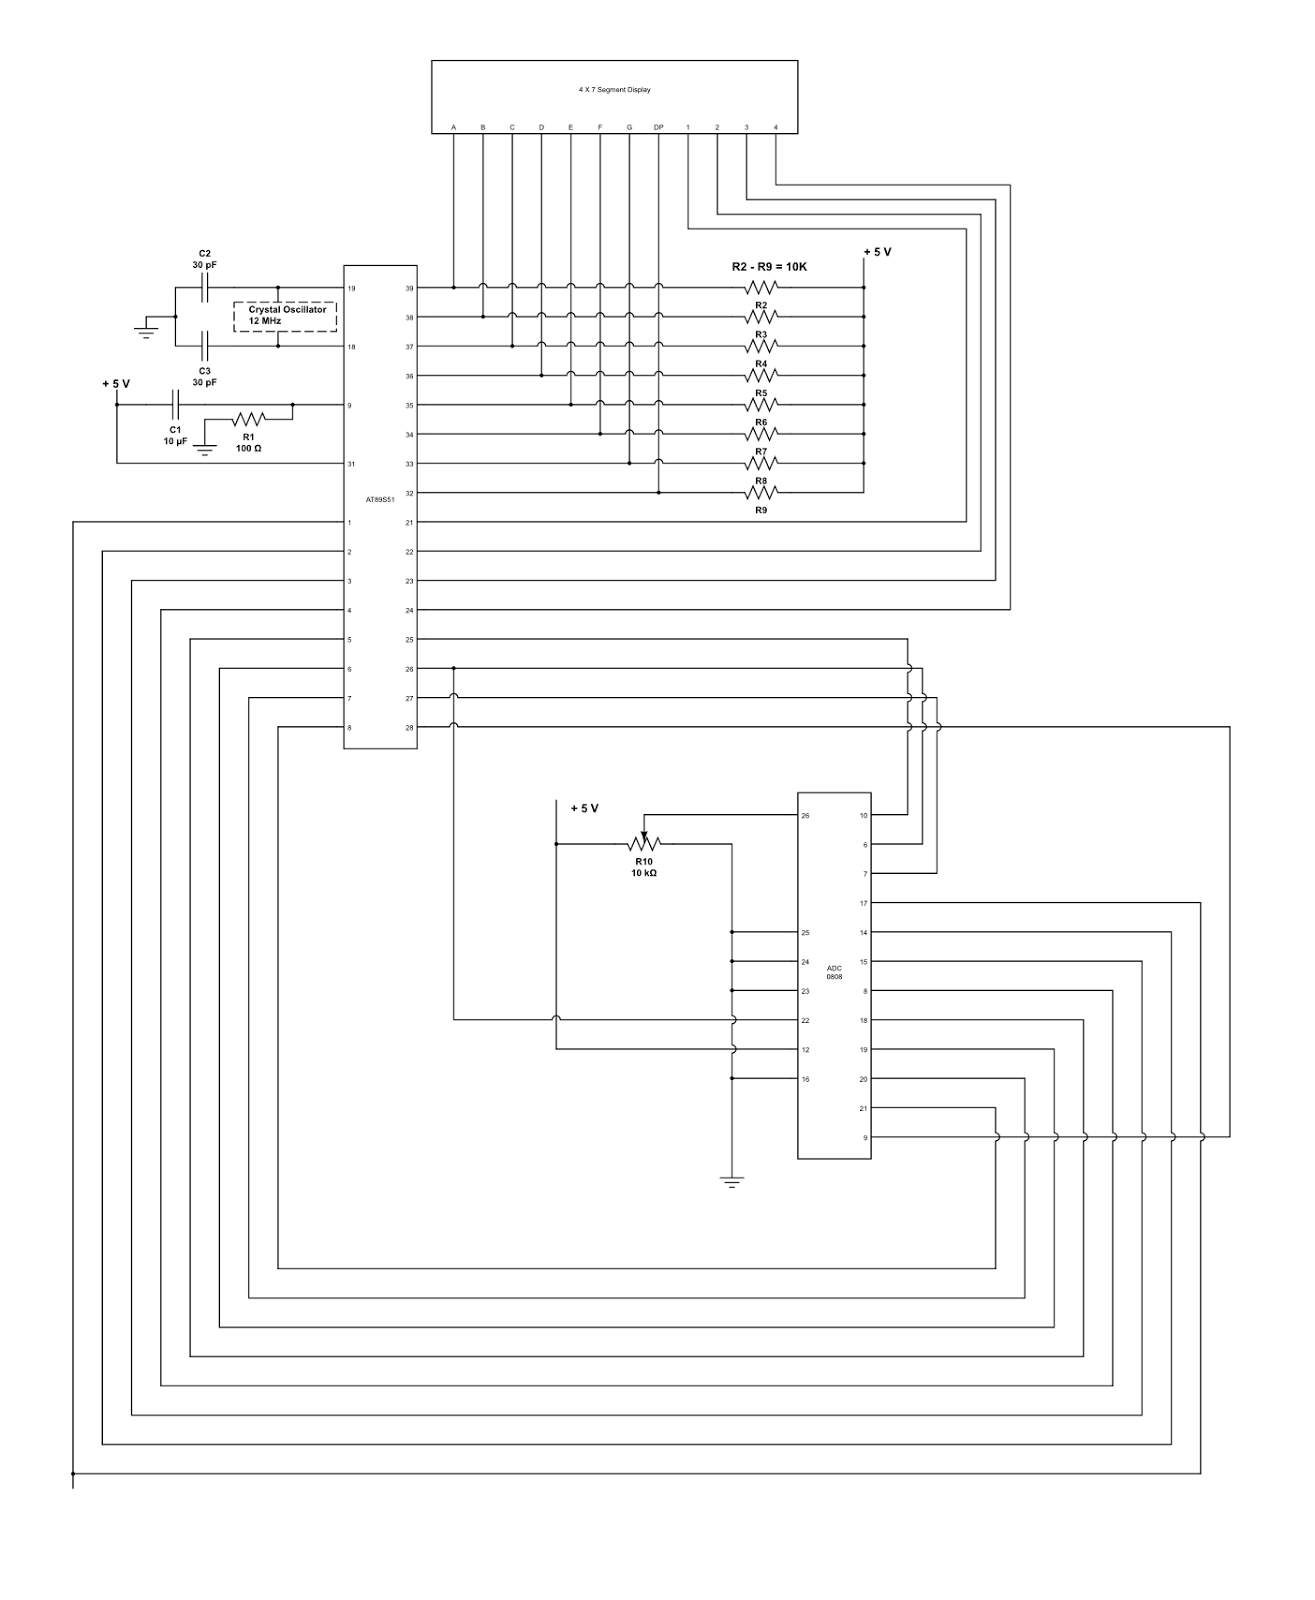 digital voltmeter using 8051 microcontroller Digital voltmeter circuit using 8051 | analog to digital converter this is a simple digital voltmeter circuit diagram using 8051 microcontroller we can also call it as analog to digital converter.